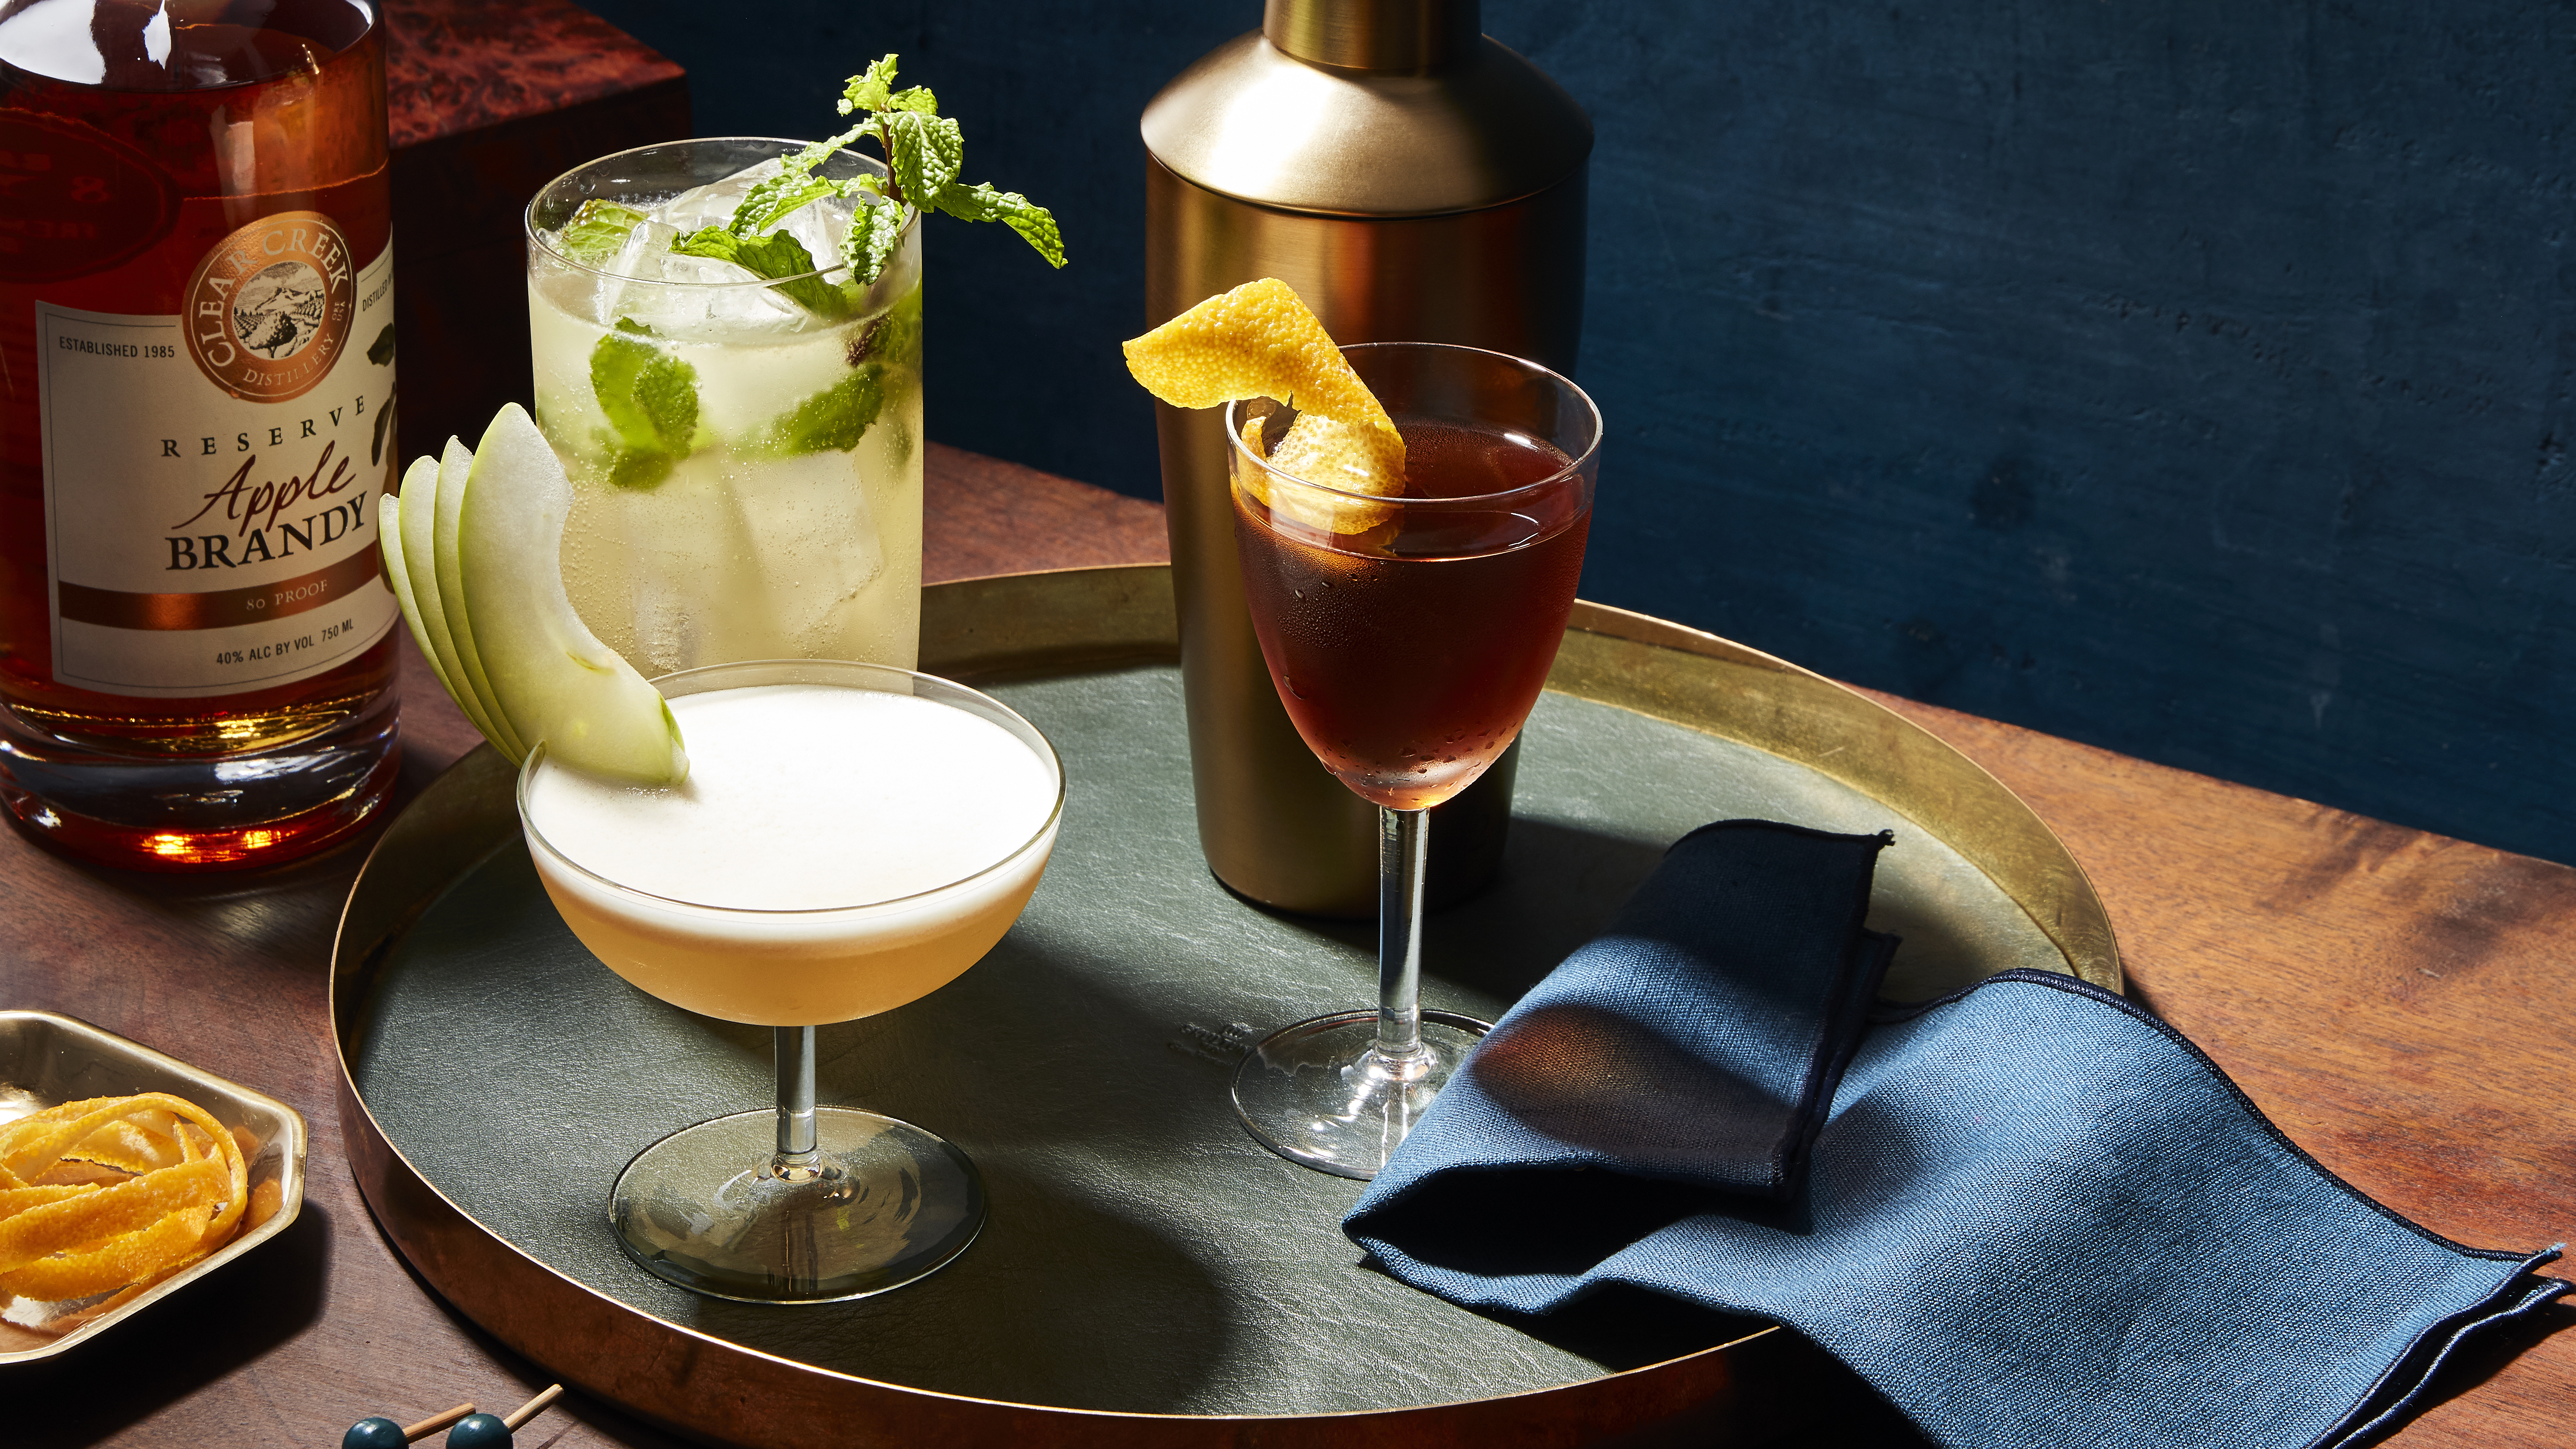 Good Apples The Best Apple Brandy Cocktail Recipes To Try Tonight